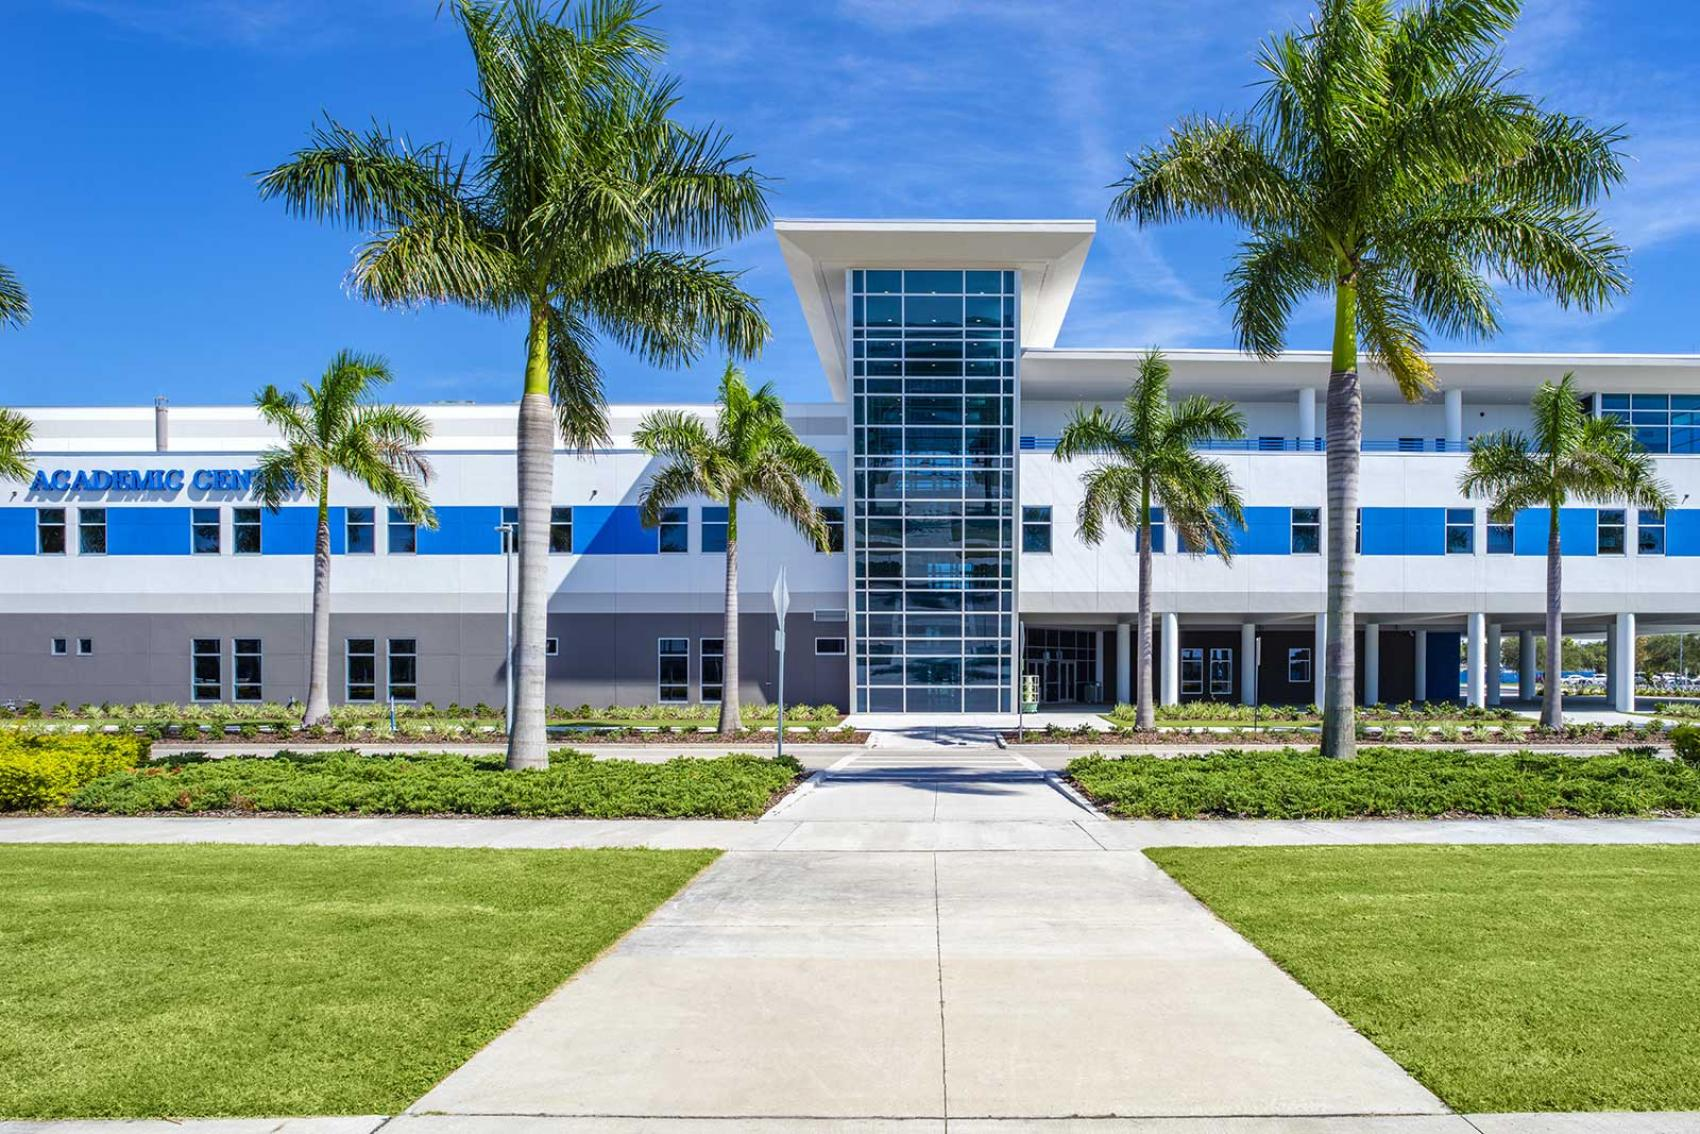 Img: Boarding School In Florida